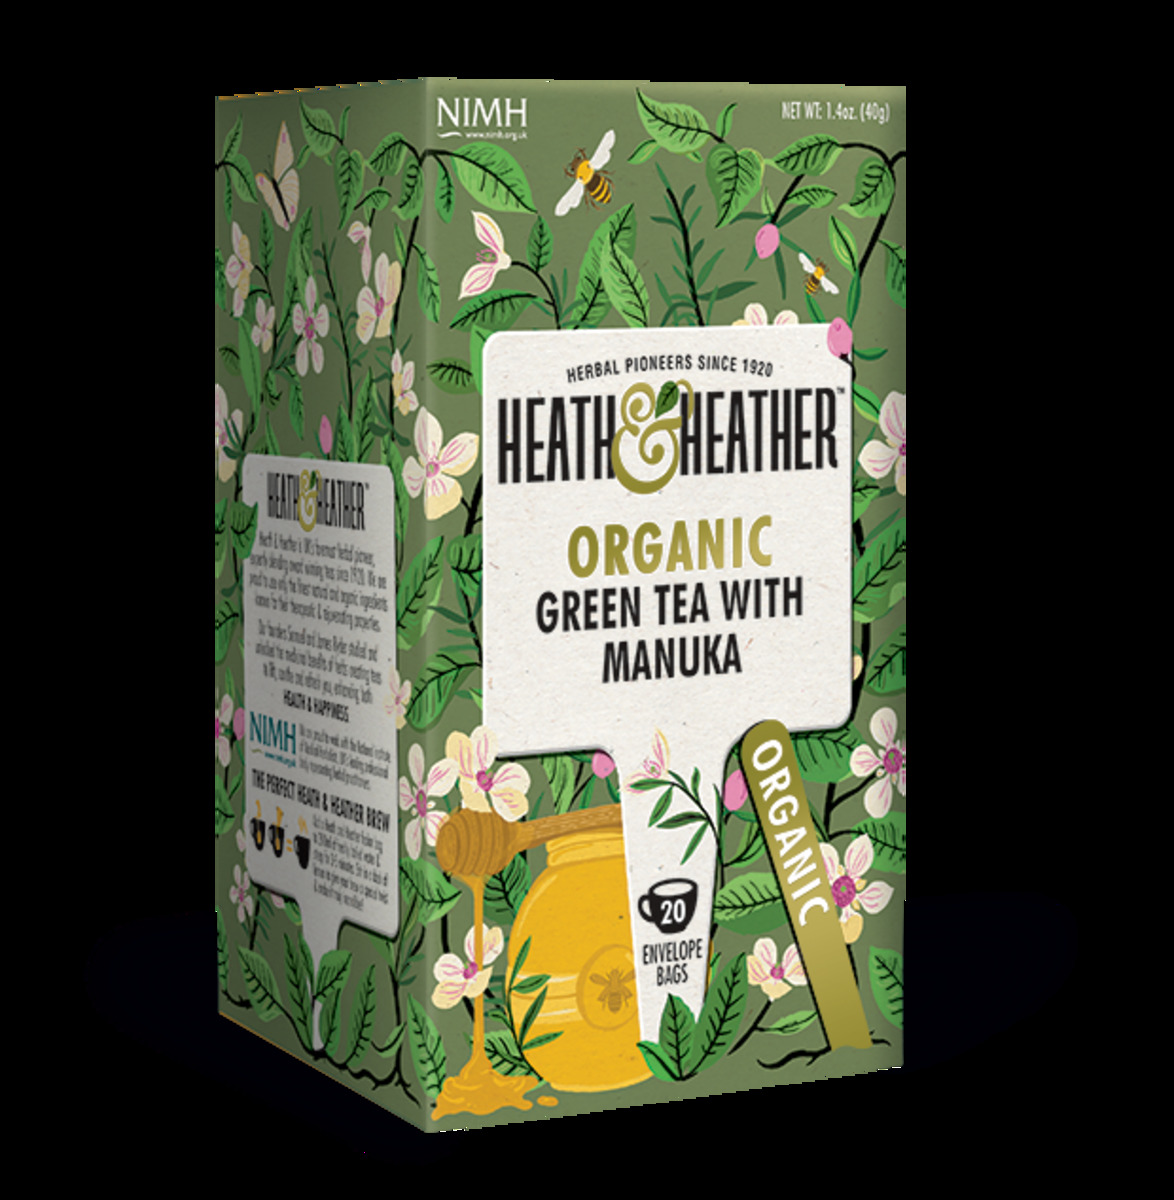 HEATH & HEATHER Organic Green Tea with Manuka 20bags(Parallel Import)